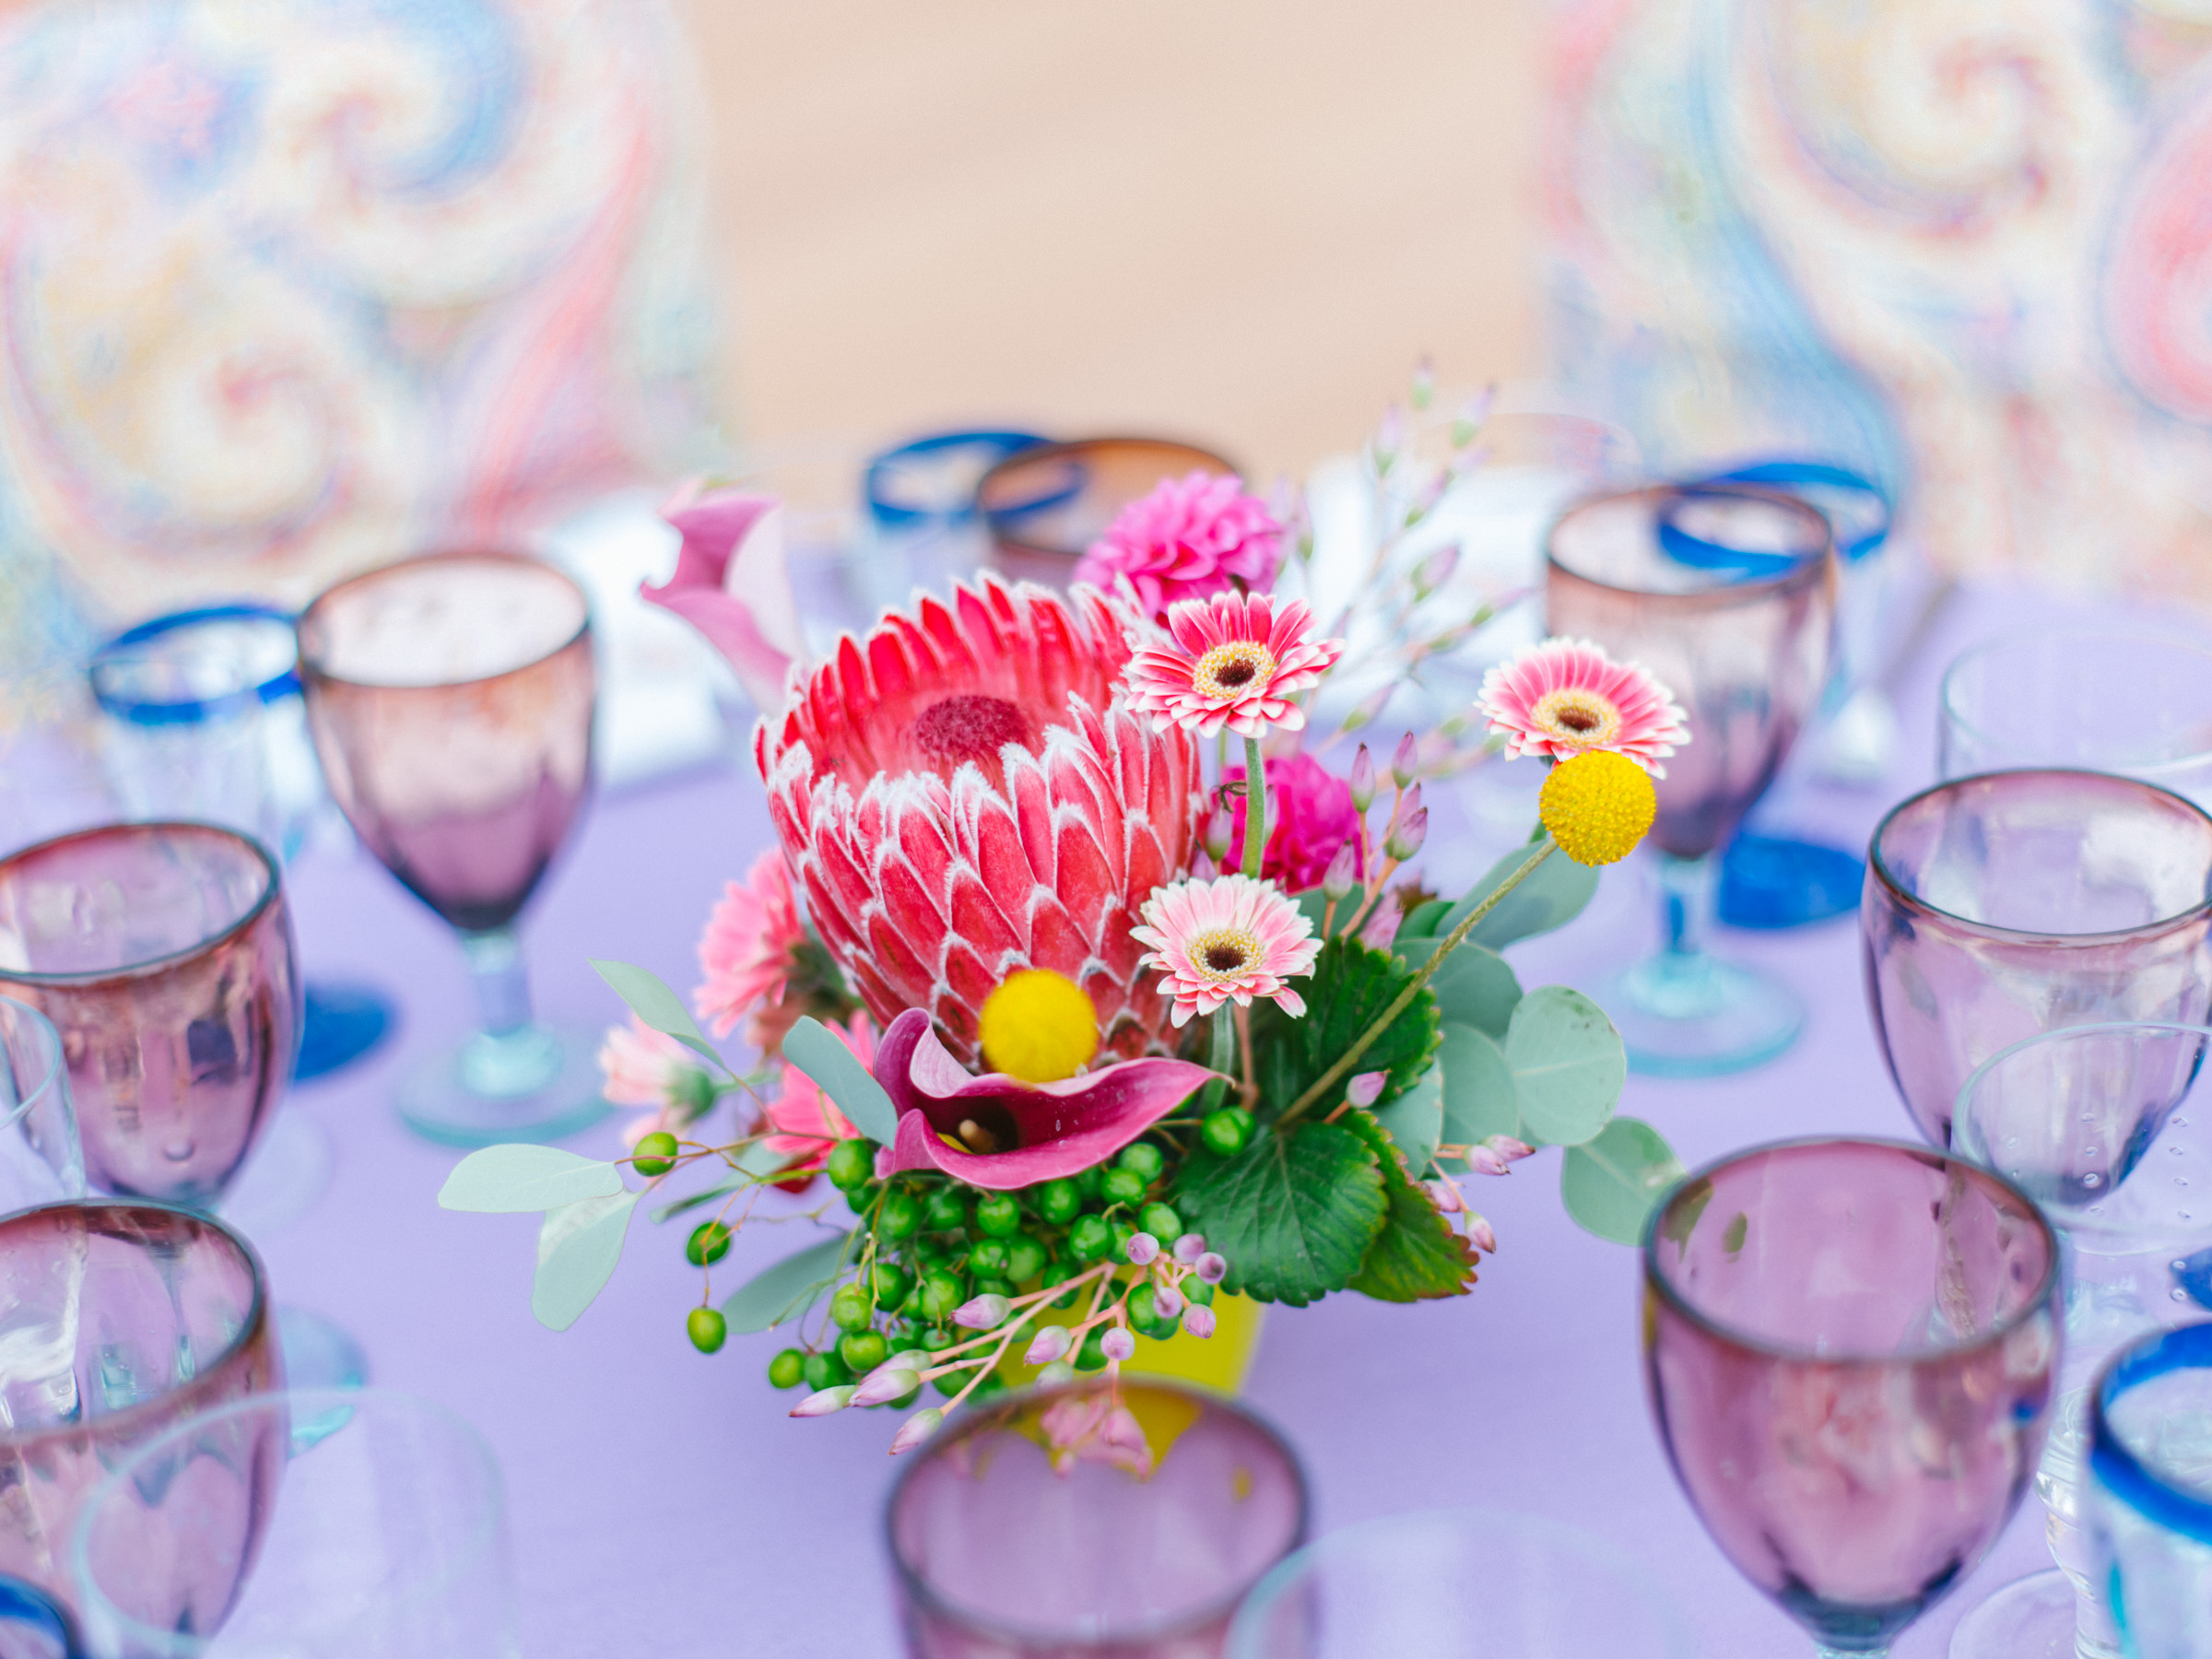 Colorful floral centerpiece with colorful glassware - photo by Amy and Stuart Photography